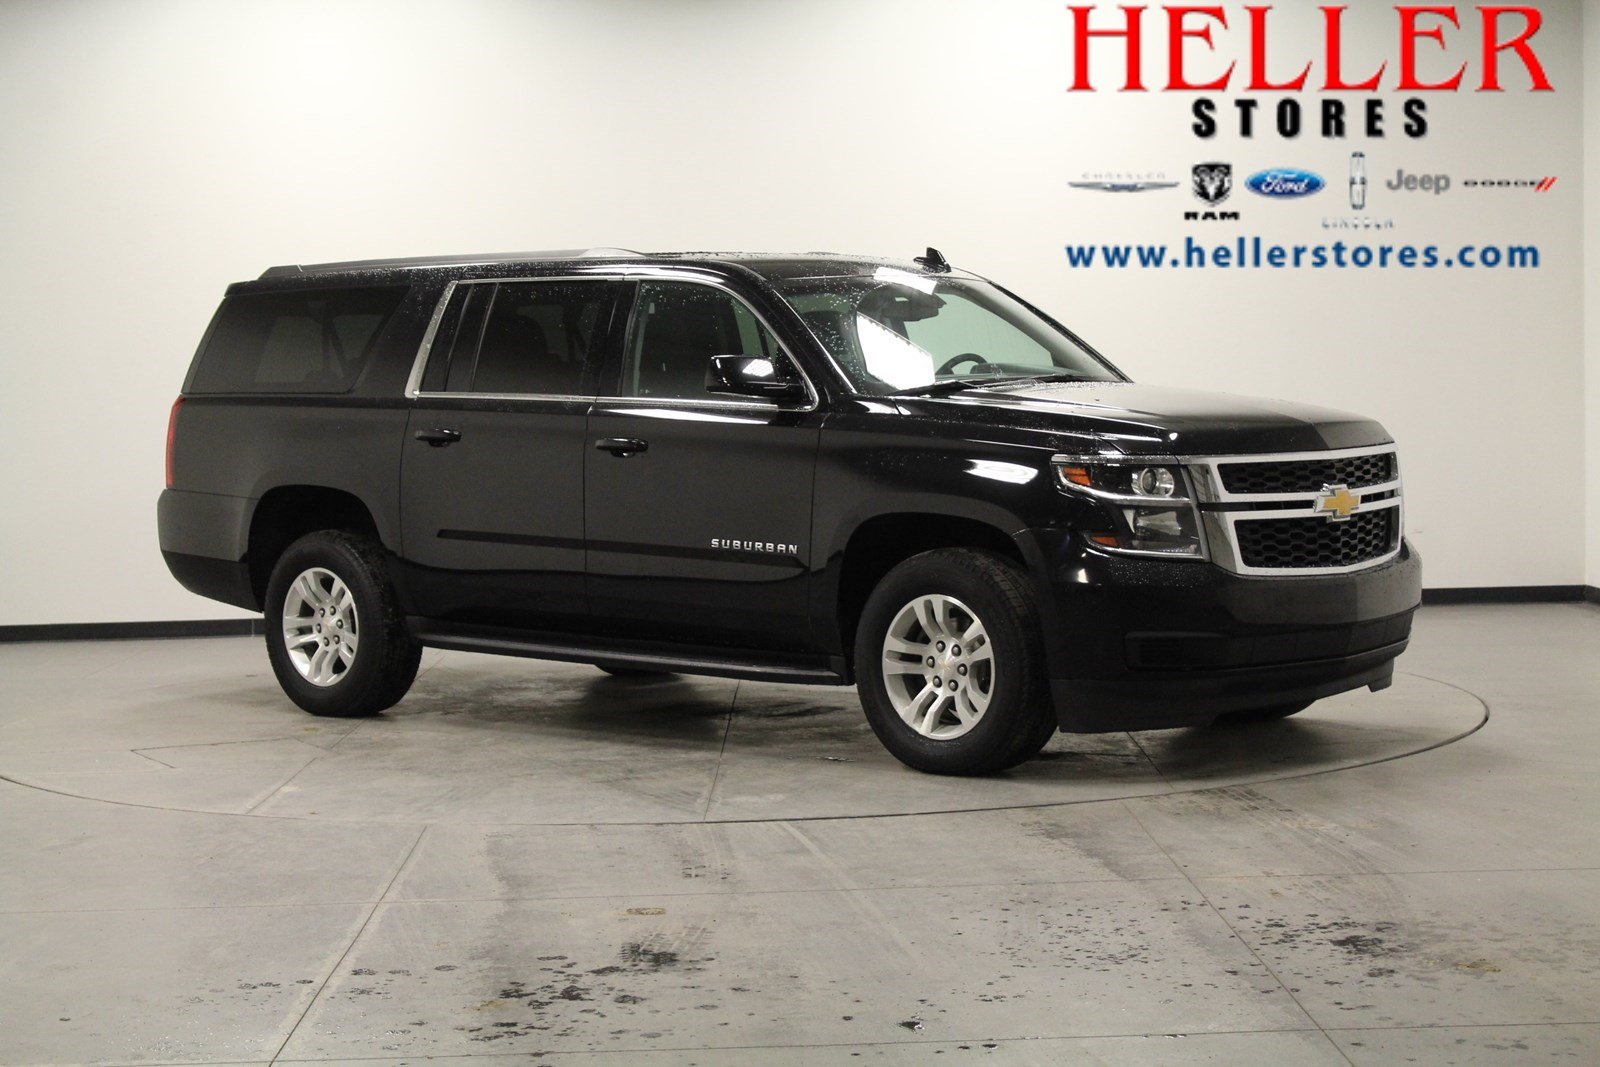 Pre-Owned 2019 Chevrolet Suburban LS